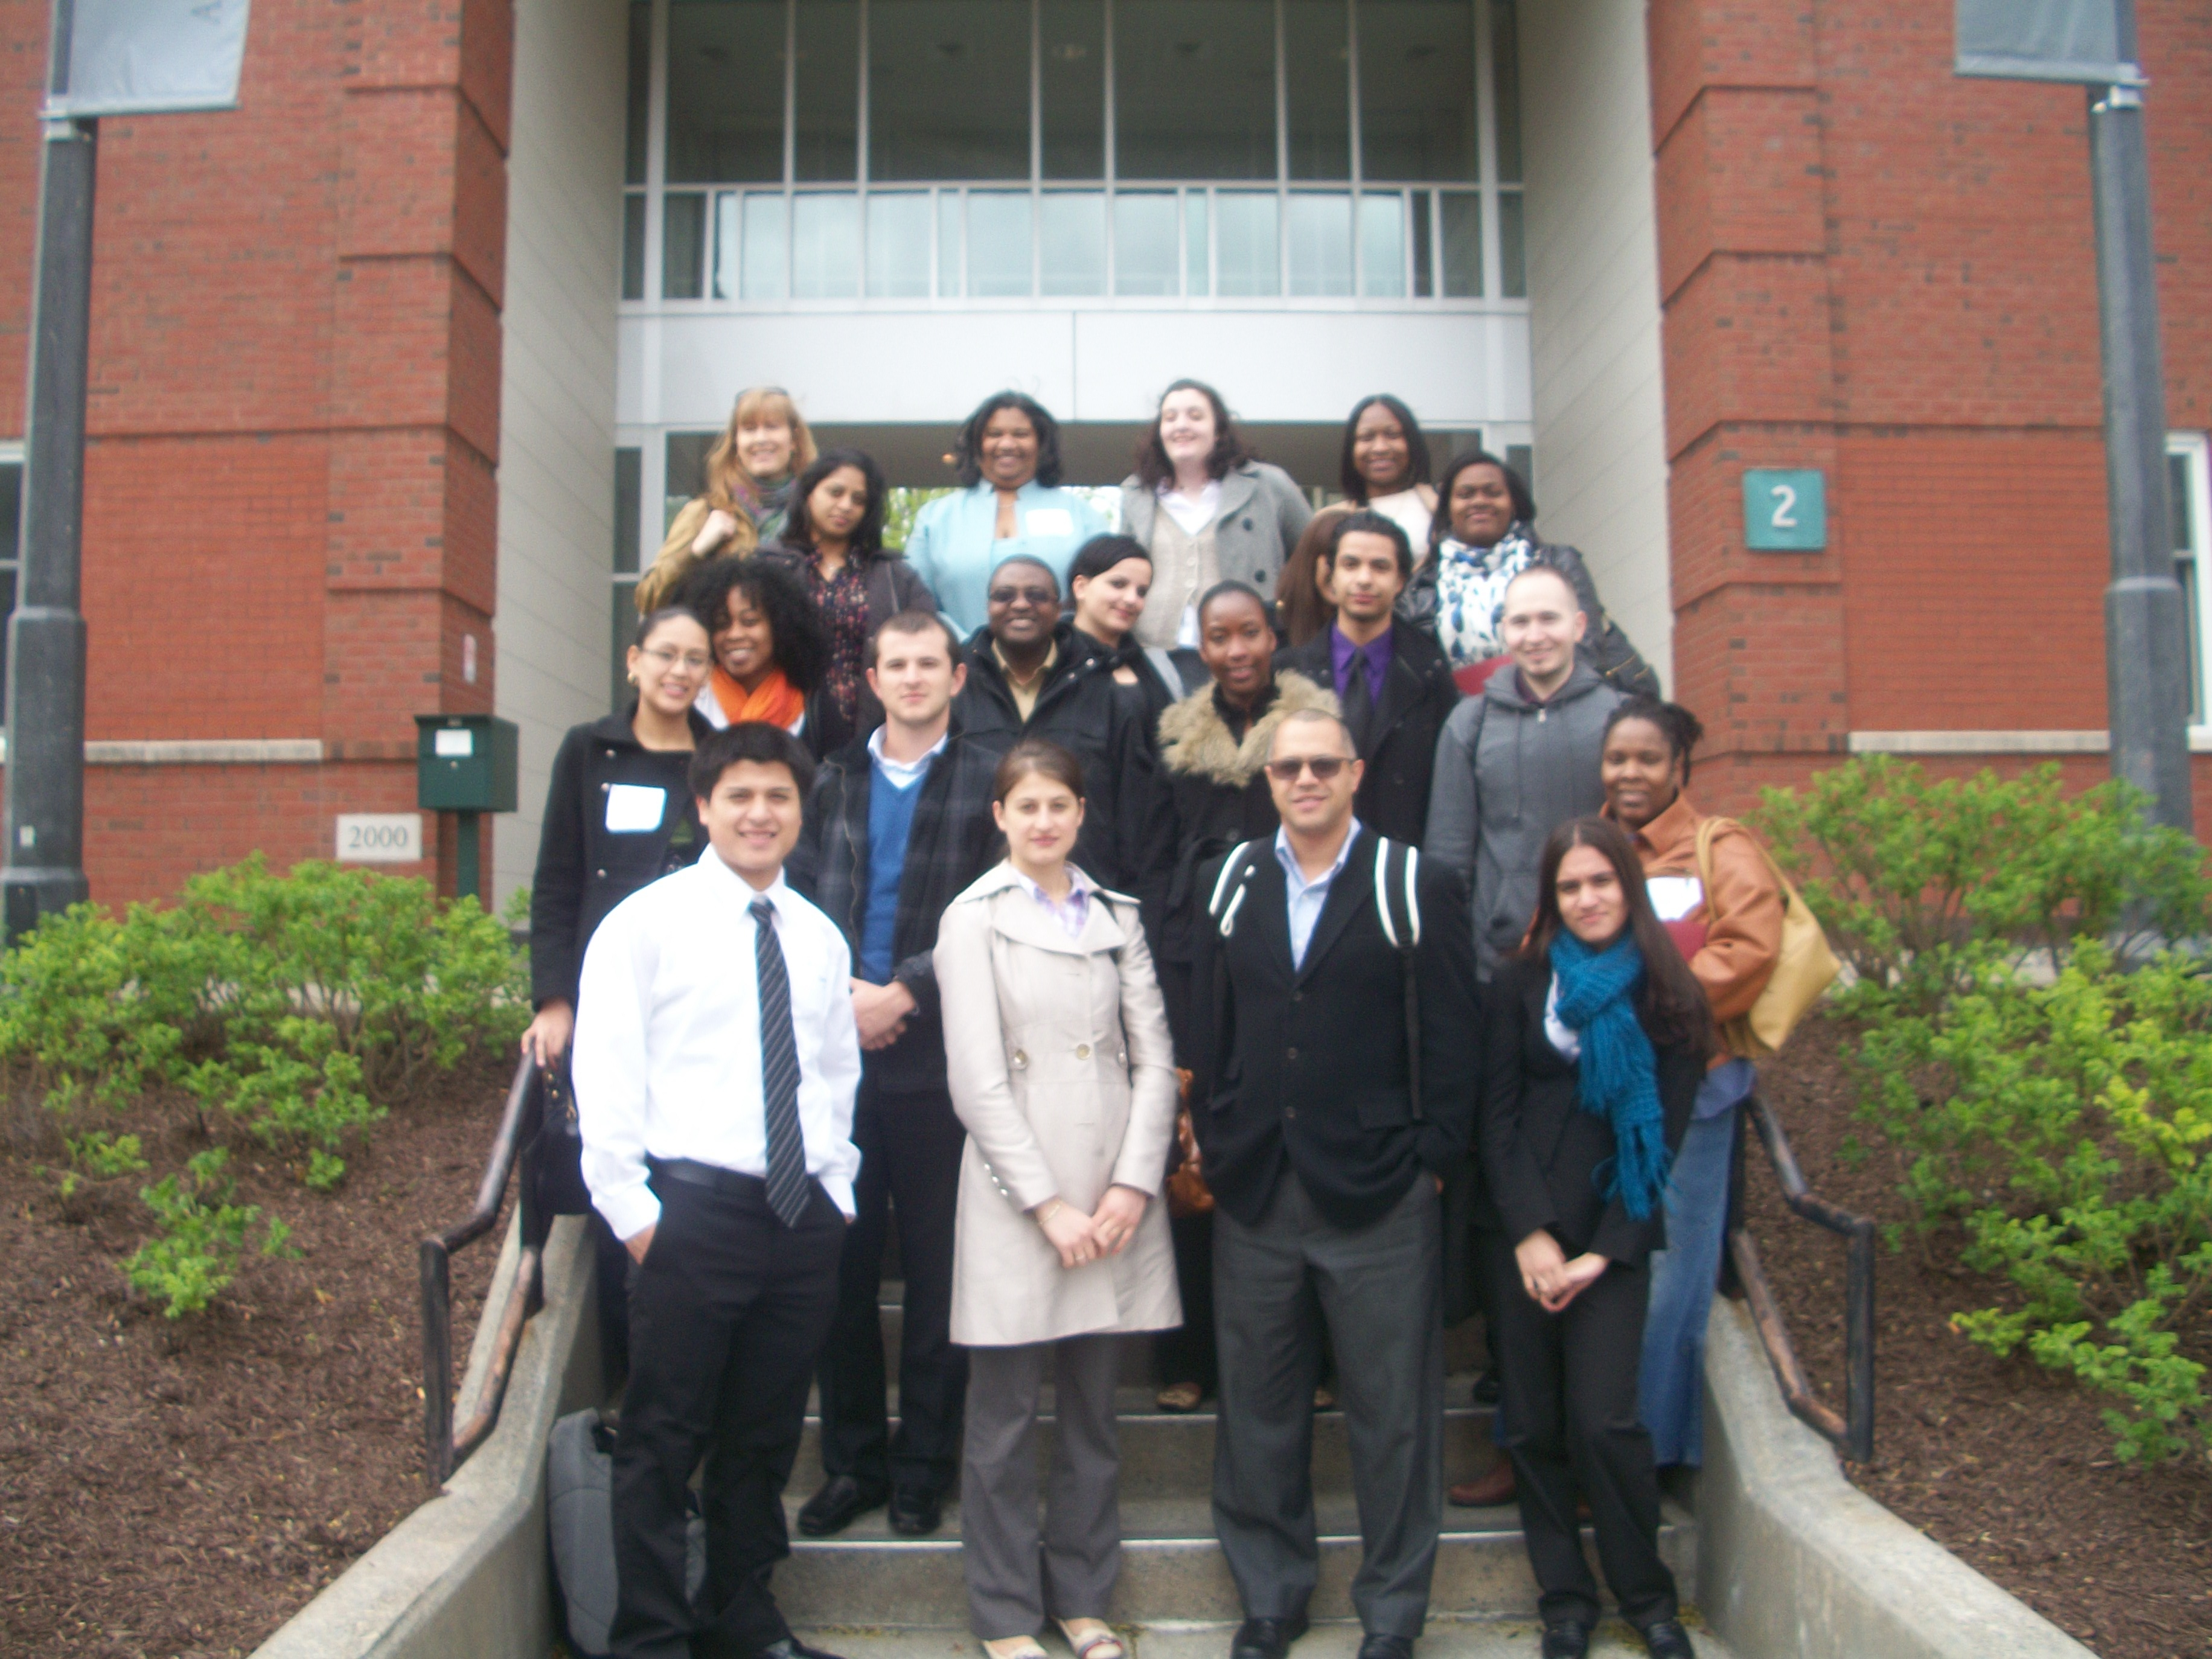 John Jay College (CUNY) pre-law students visit to Albany Law